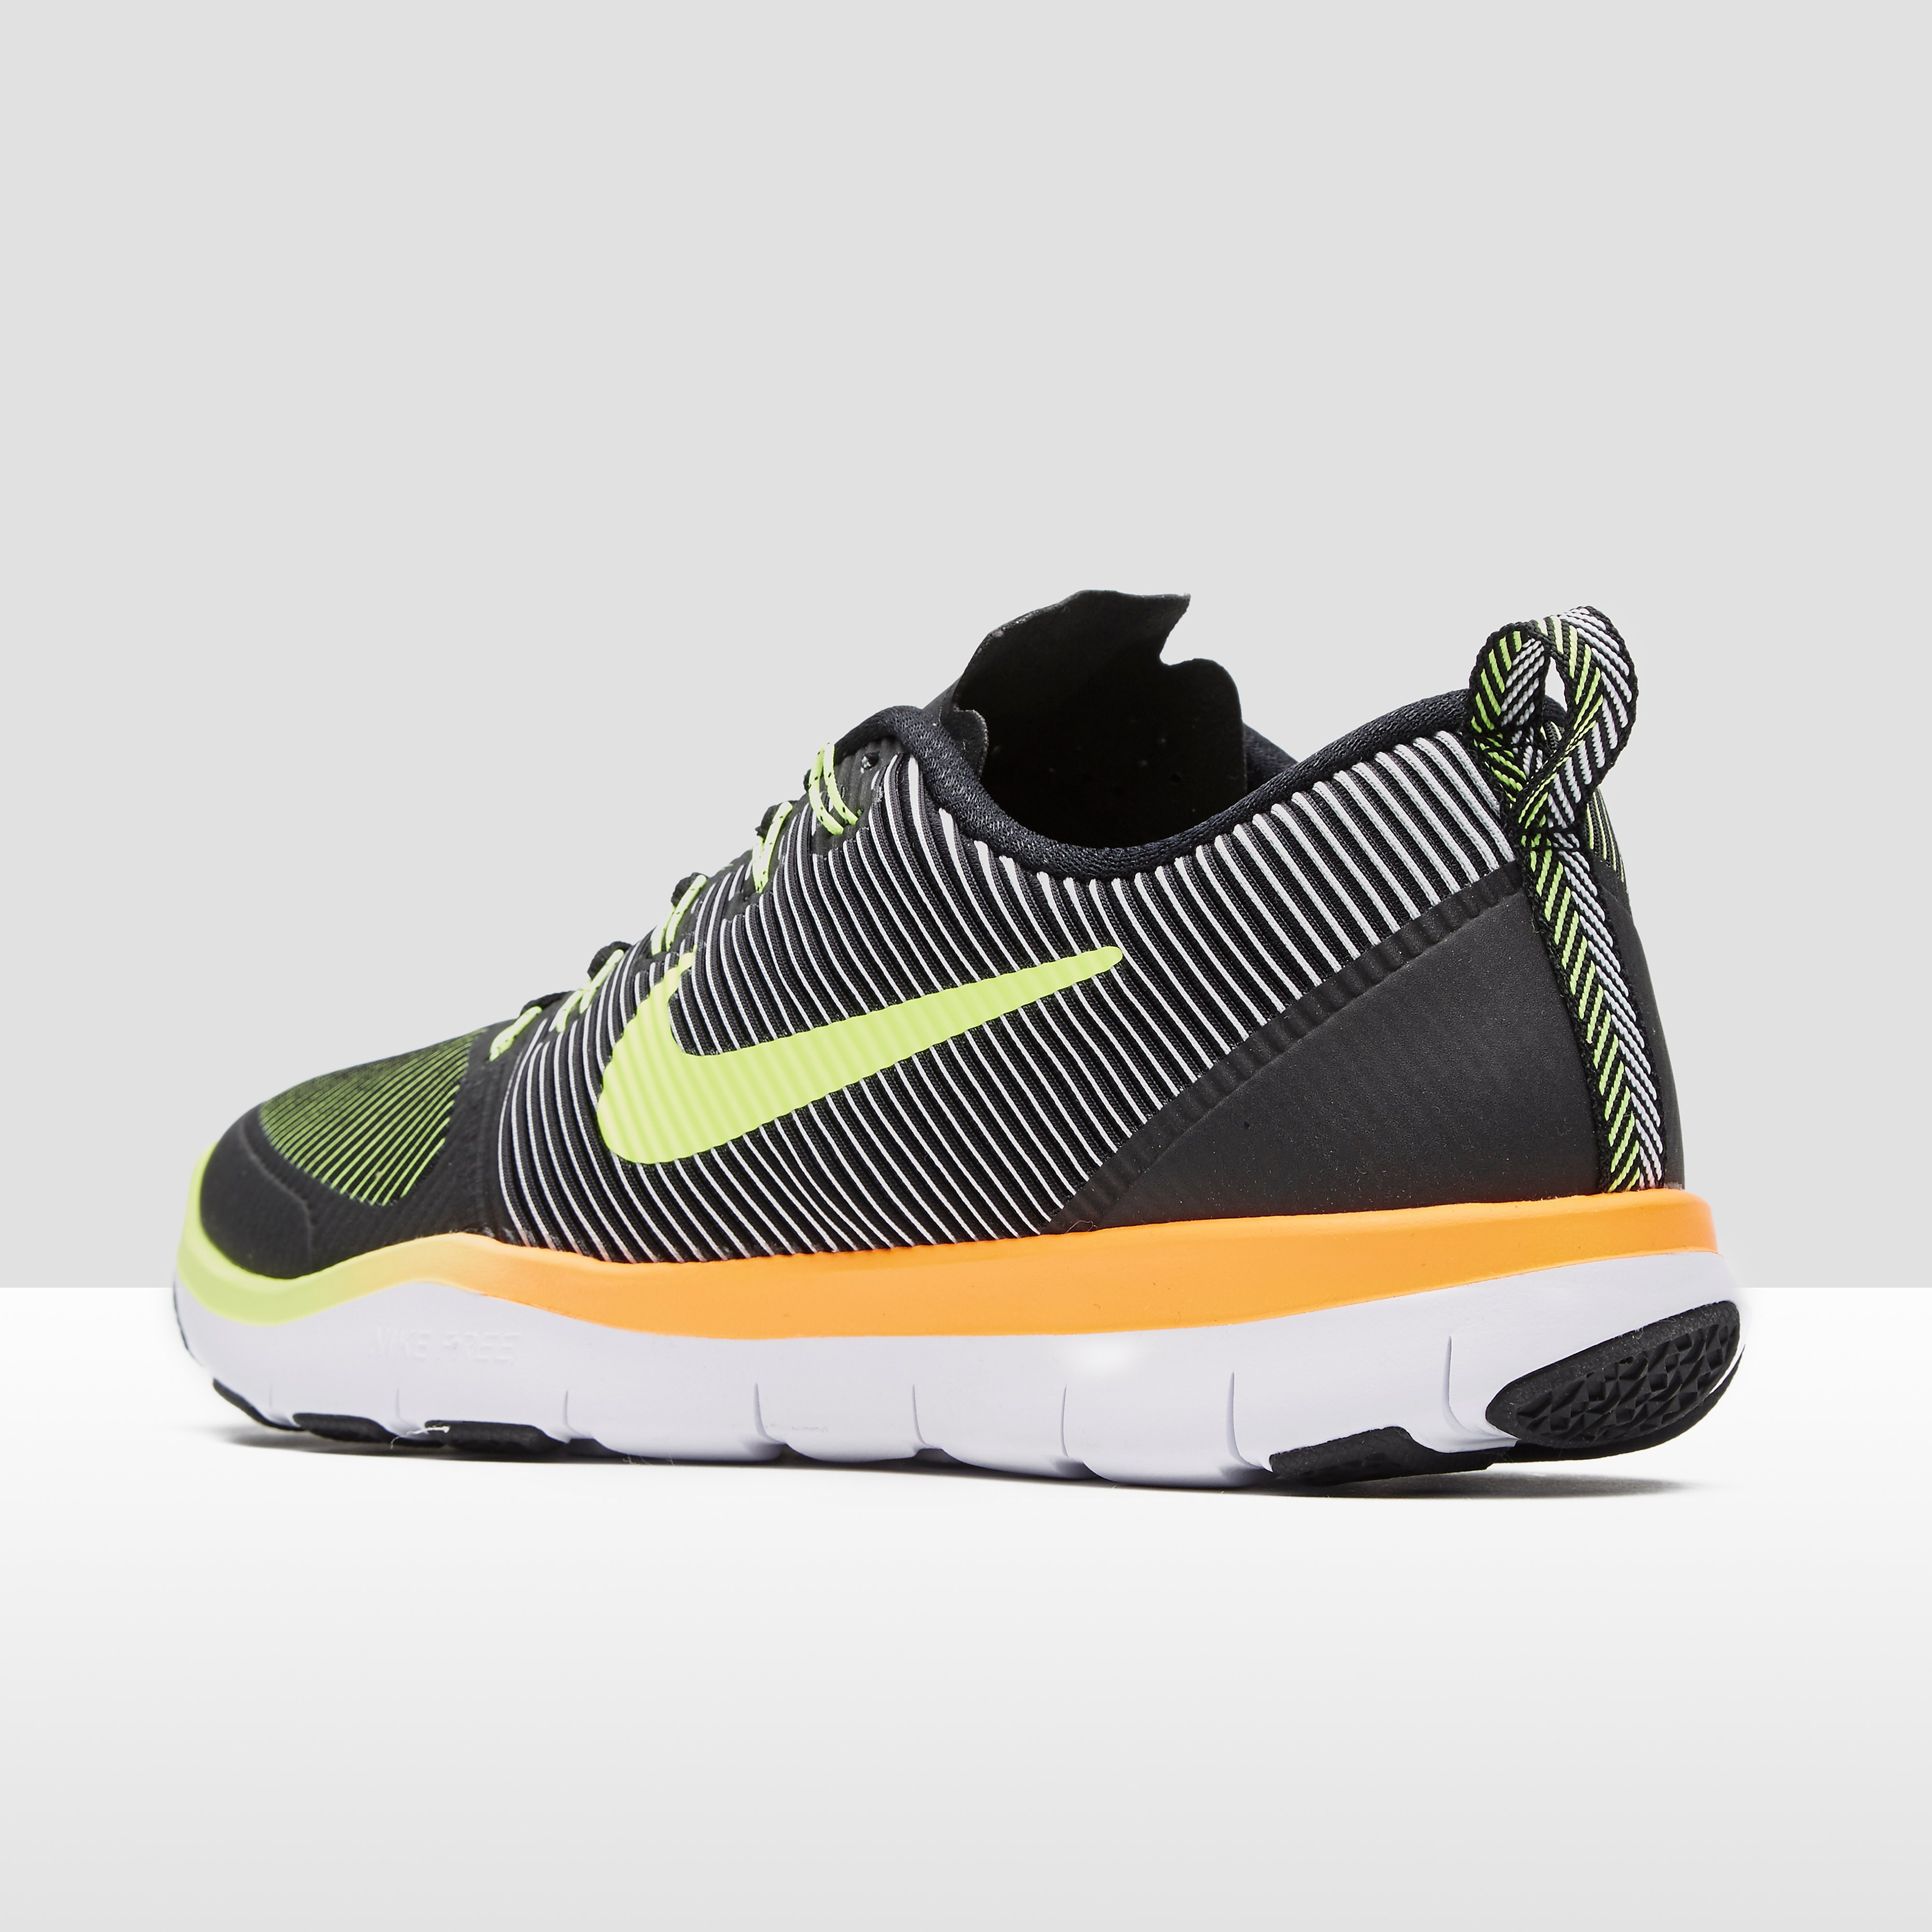 Nike FREE TRAIN RUNNING SHOE